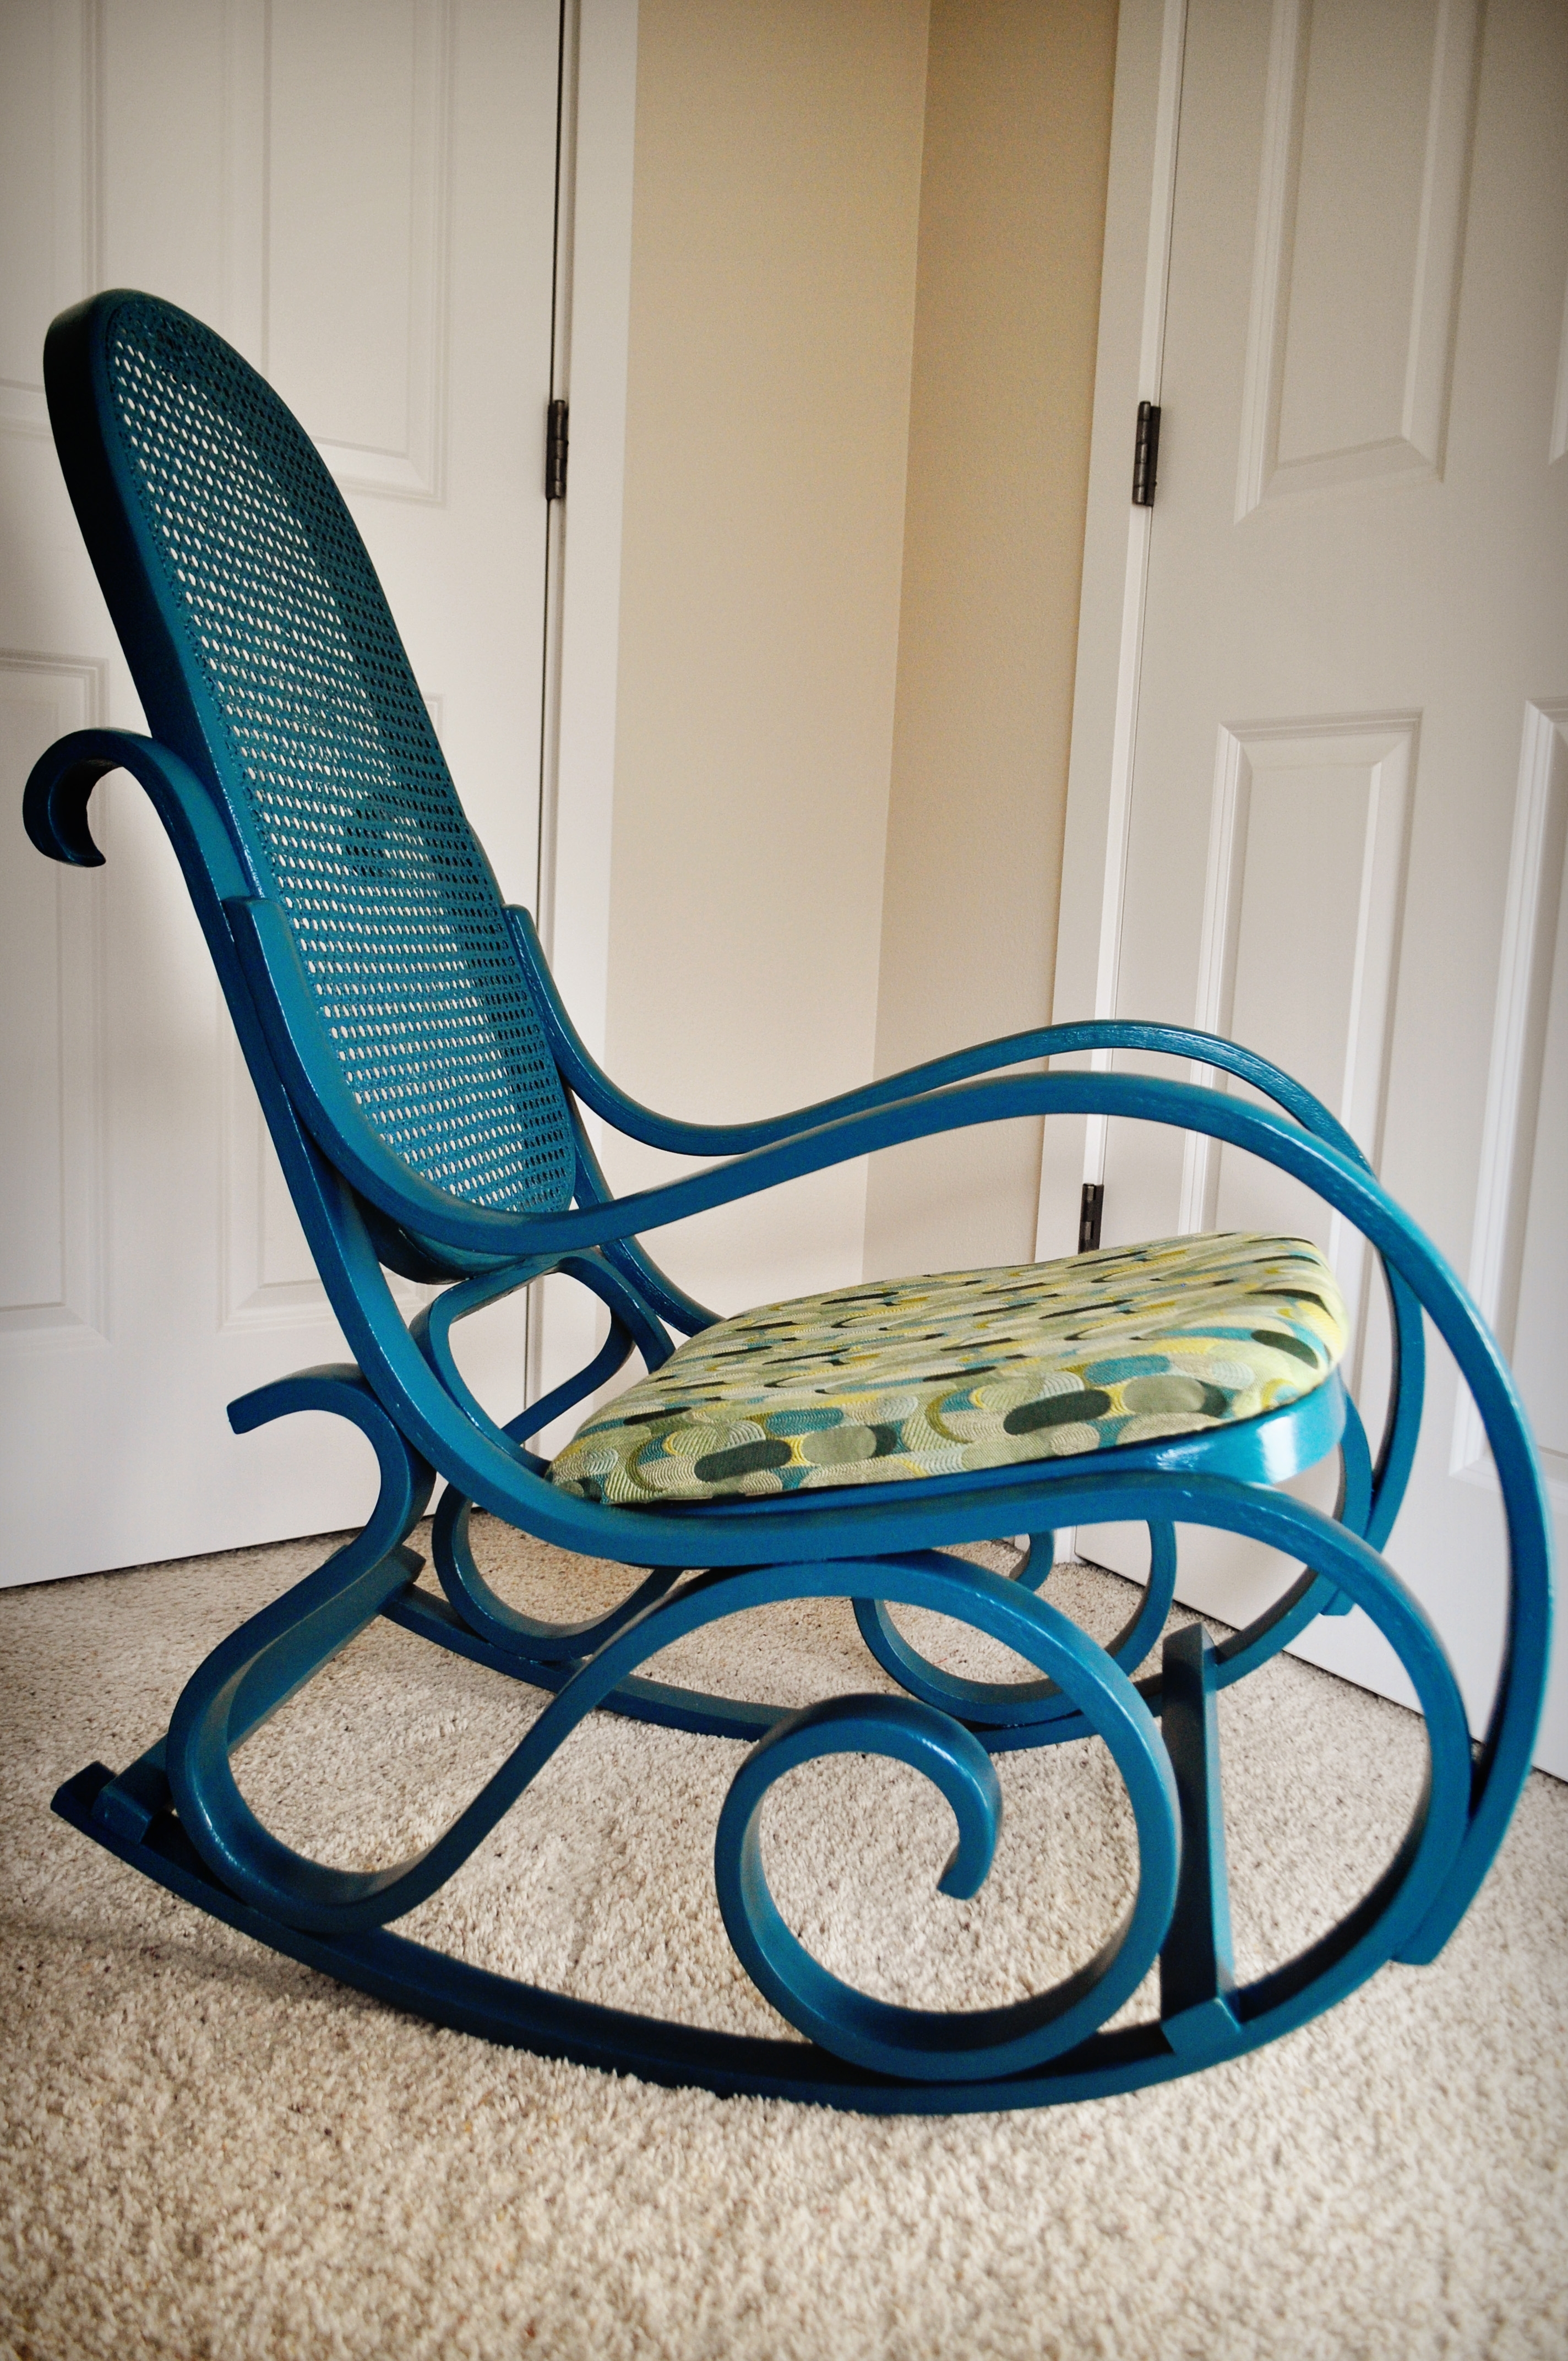 Fashionable Antique Wicker Rocking Chairs Regarding Furniture: Antique Wicker Rocking Chair Design (View 10 of 15)